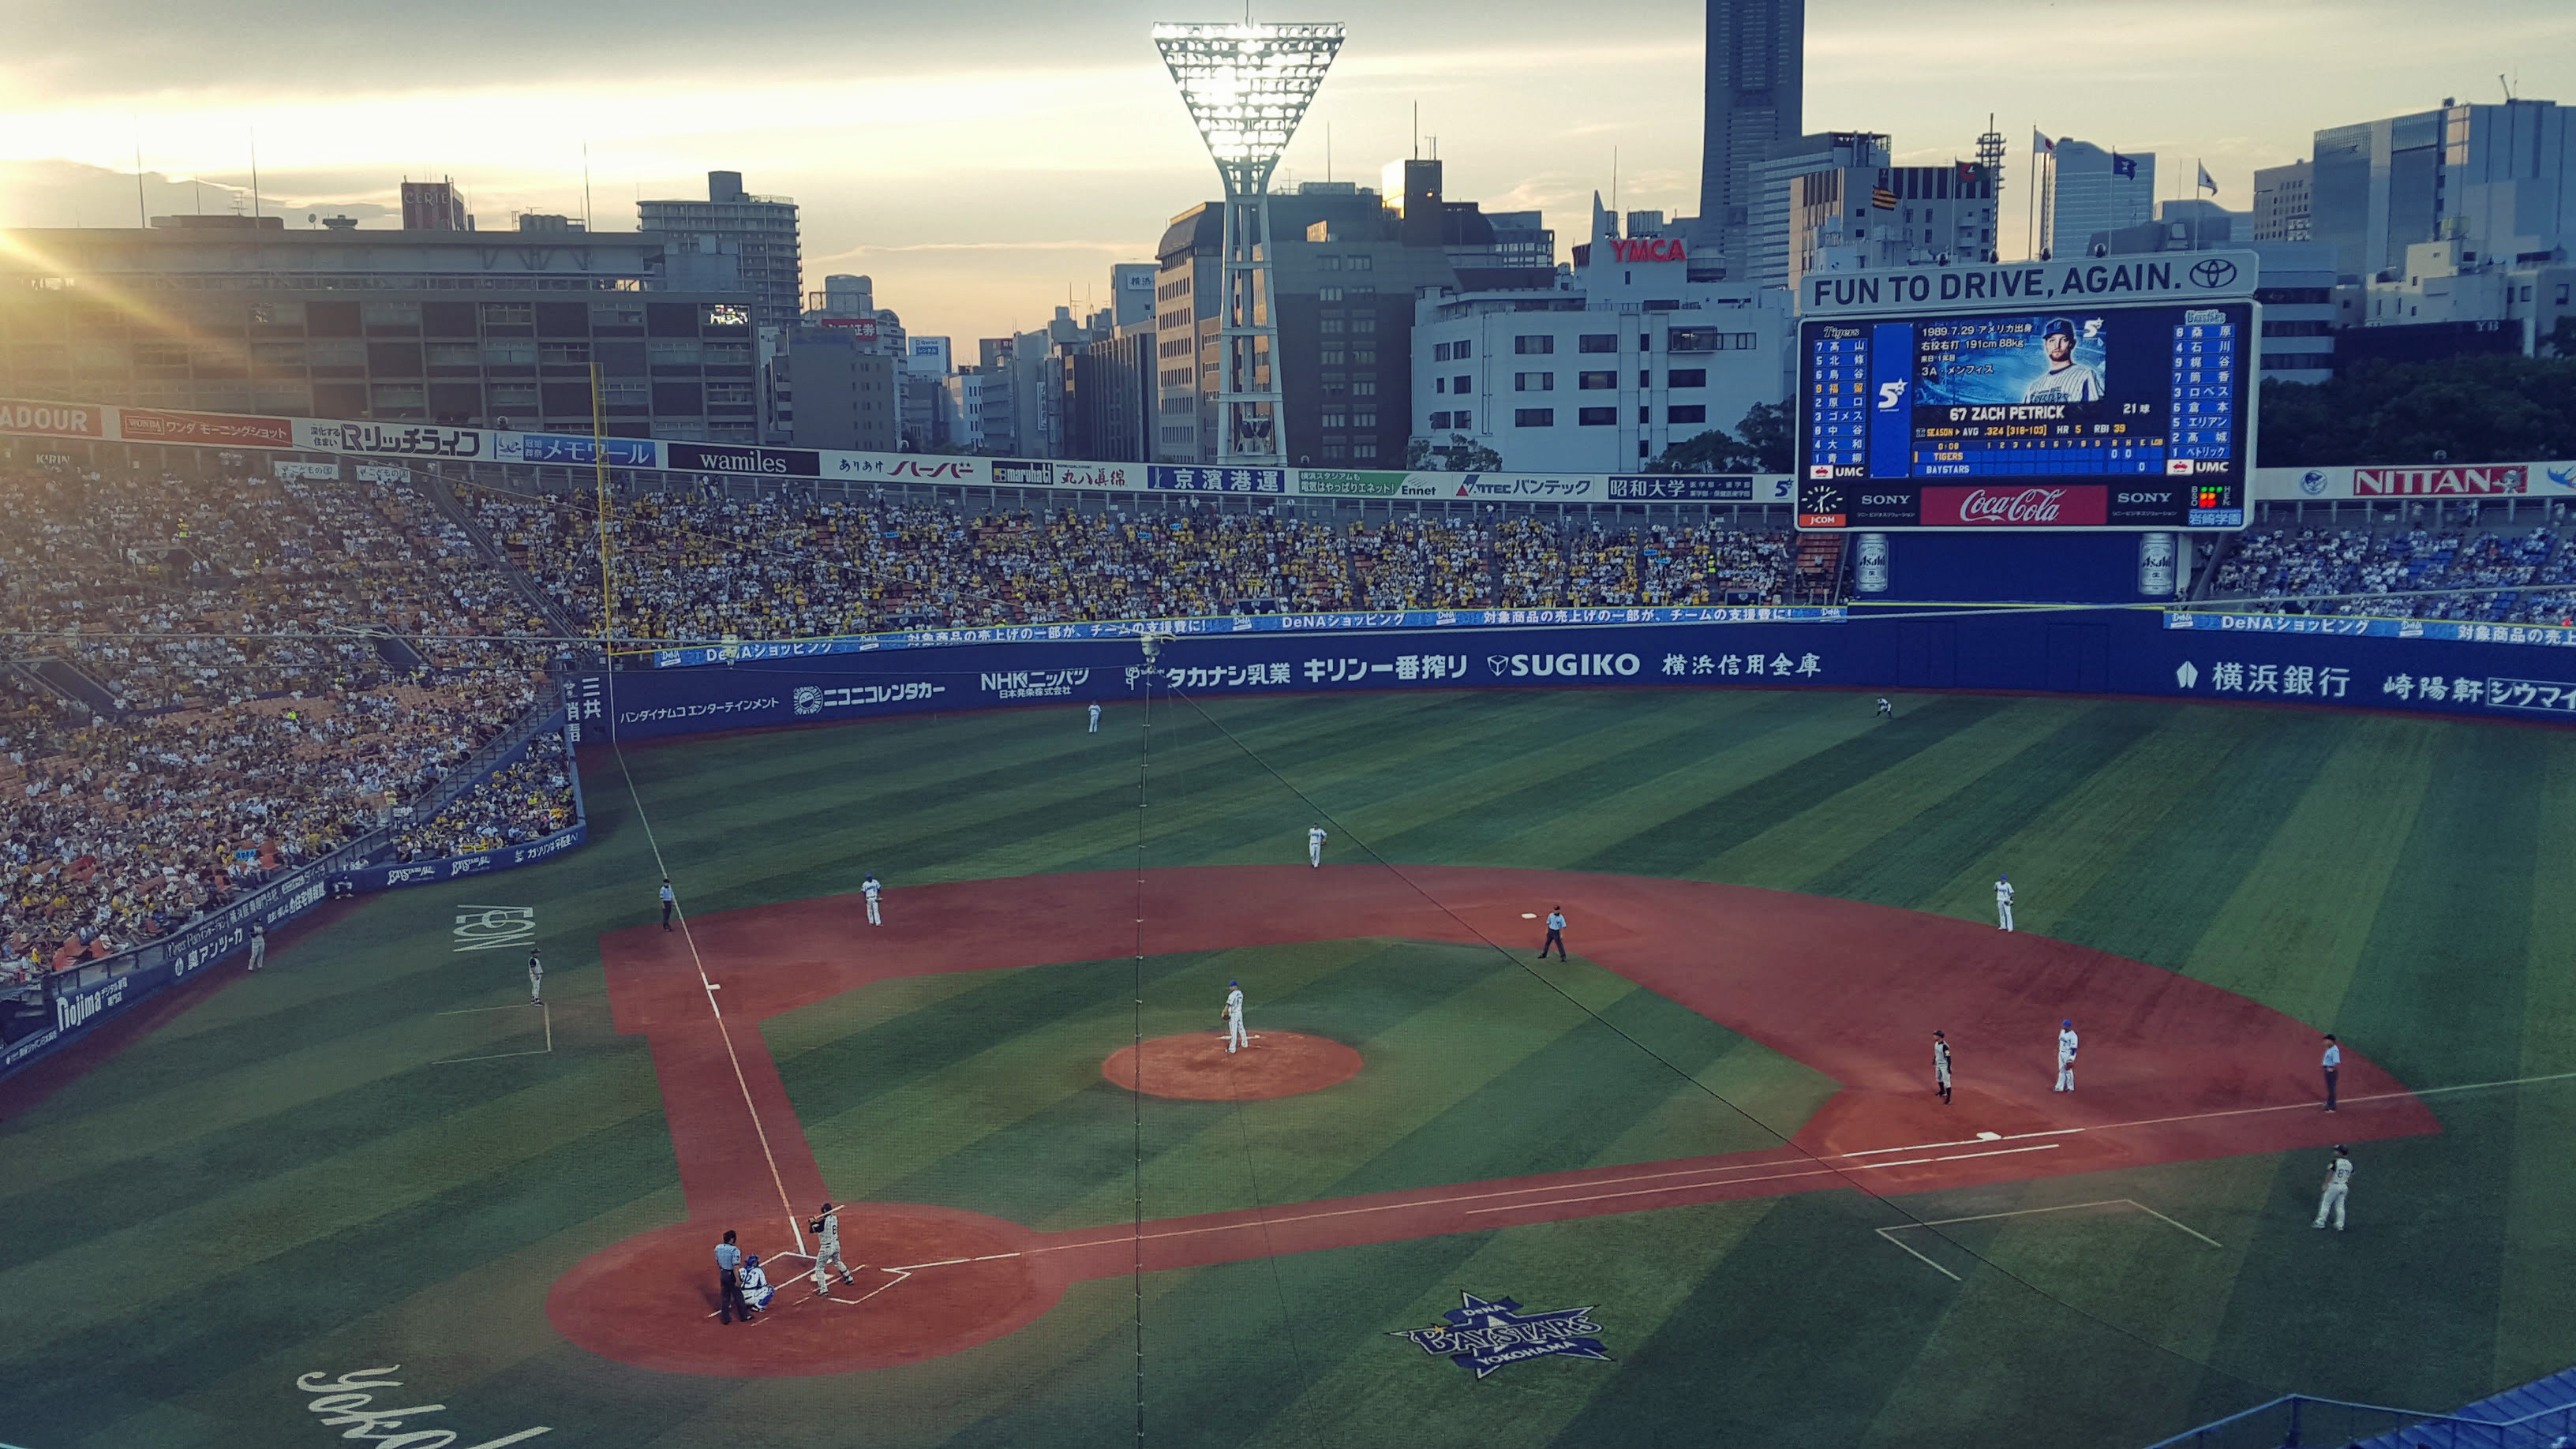 Yokohama baseball game